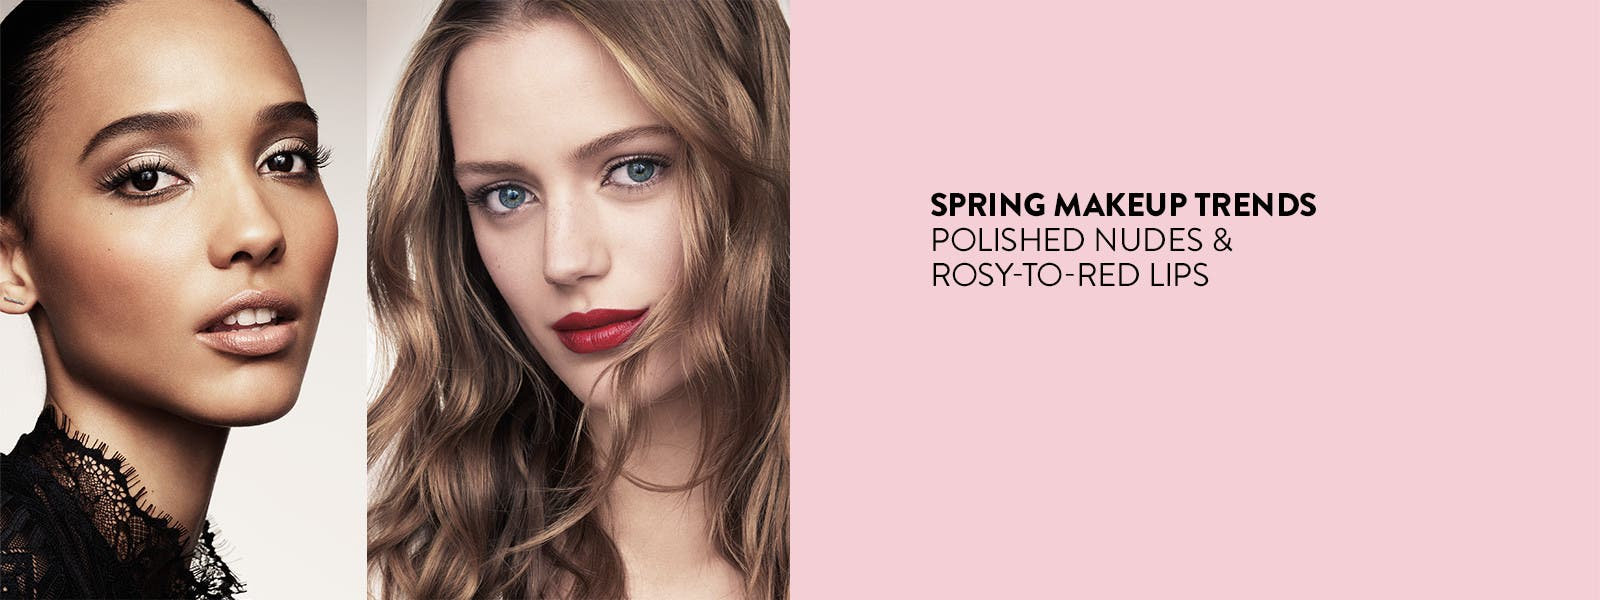 Spring makeup trends: polished nudes and rosy-to-red lips.